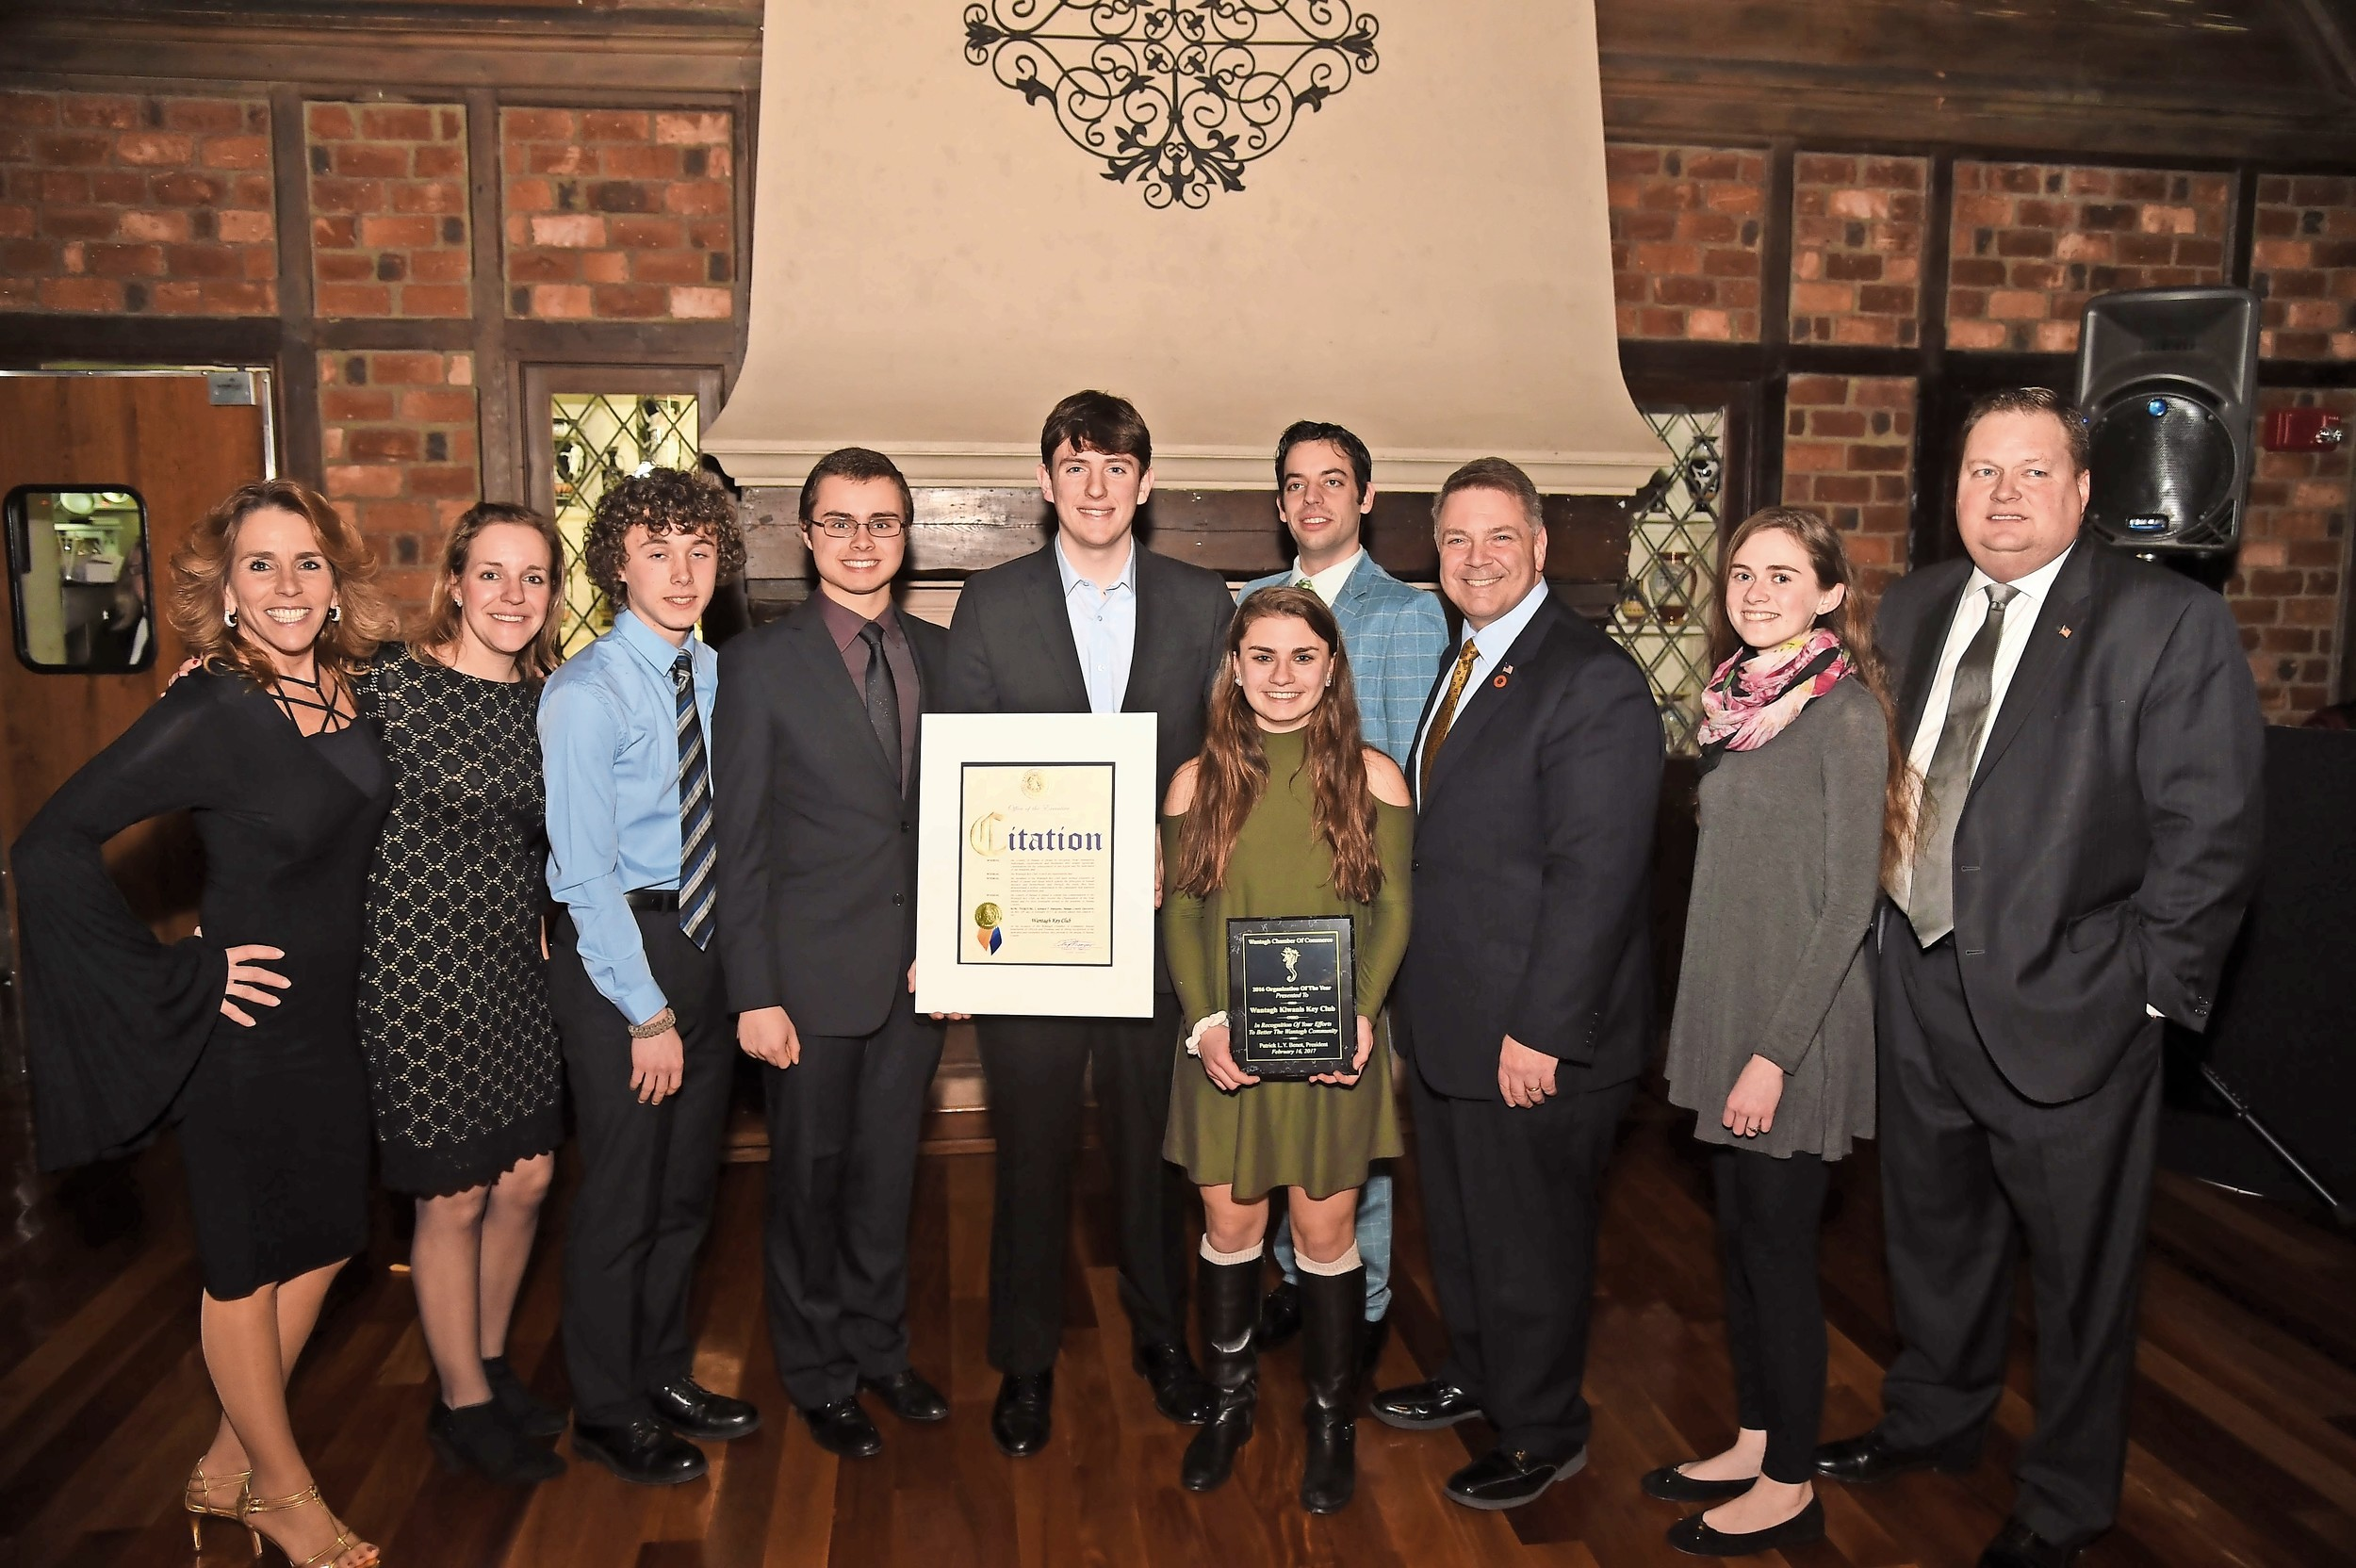 Wantagh Chamber of Commerce leaders named the high school's Key Club the organization of the year at their installation dinner on Feb. 16.